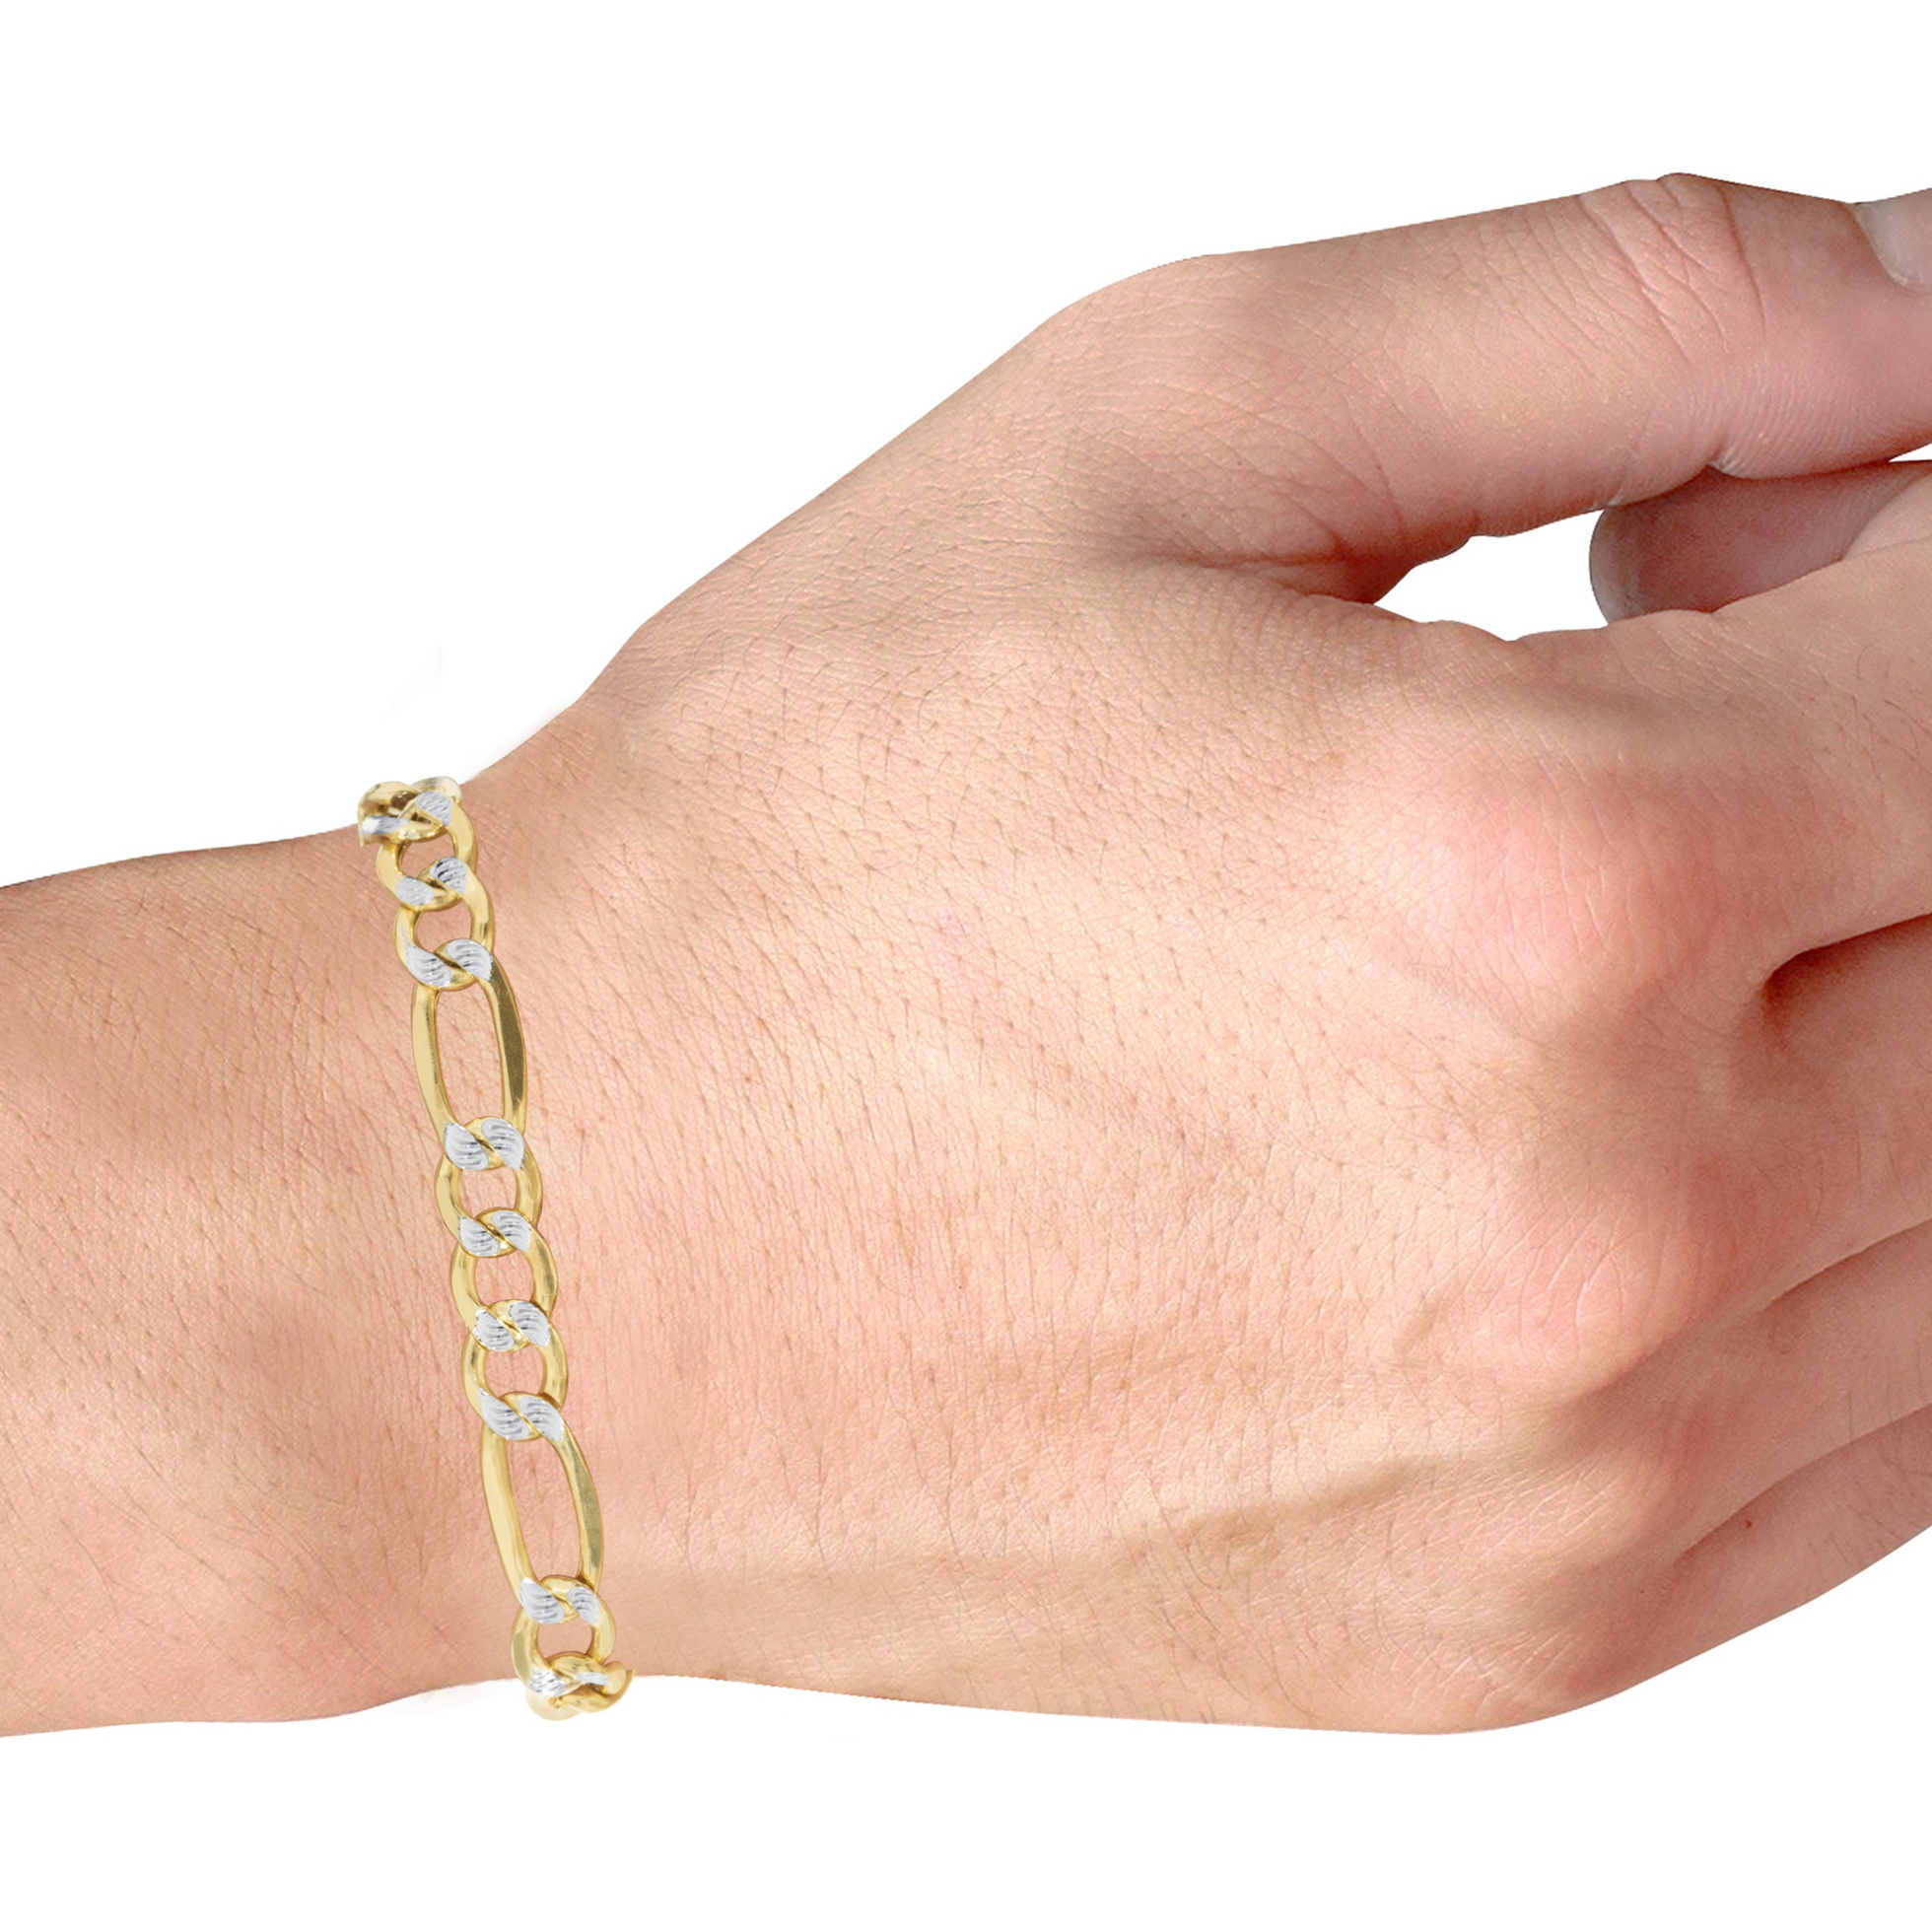 10K-Yellow-Gold-2-5-9mm-Diamond-Cut-White-Pave-Figaro-Link-Chain-Bracelet-7-034-9-034 thumbnail 22